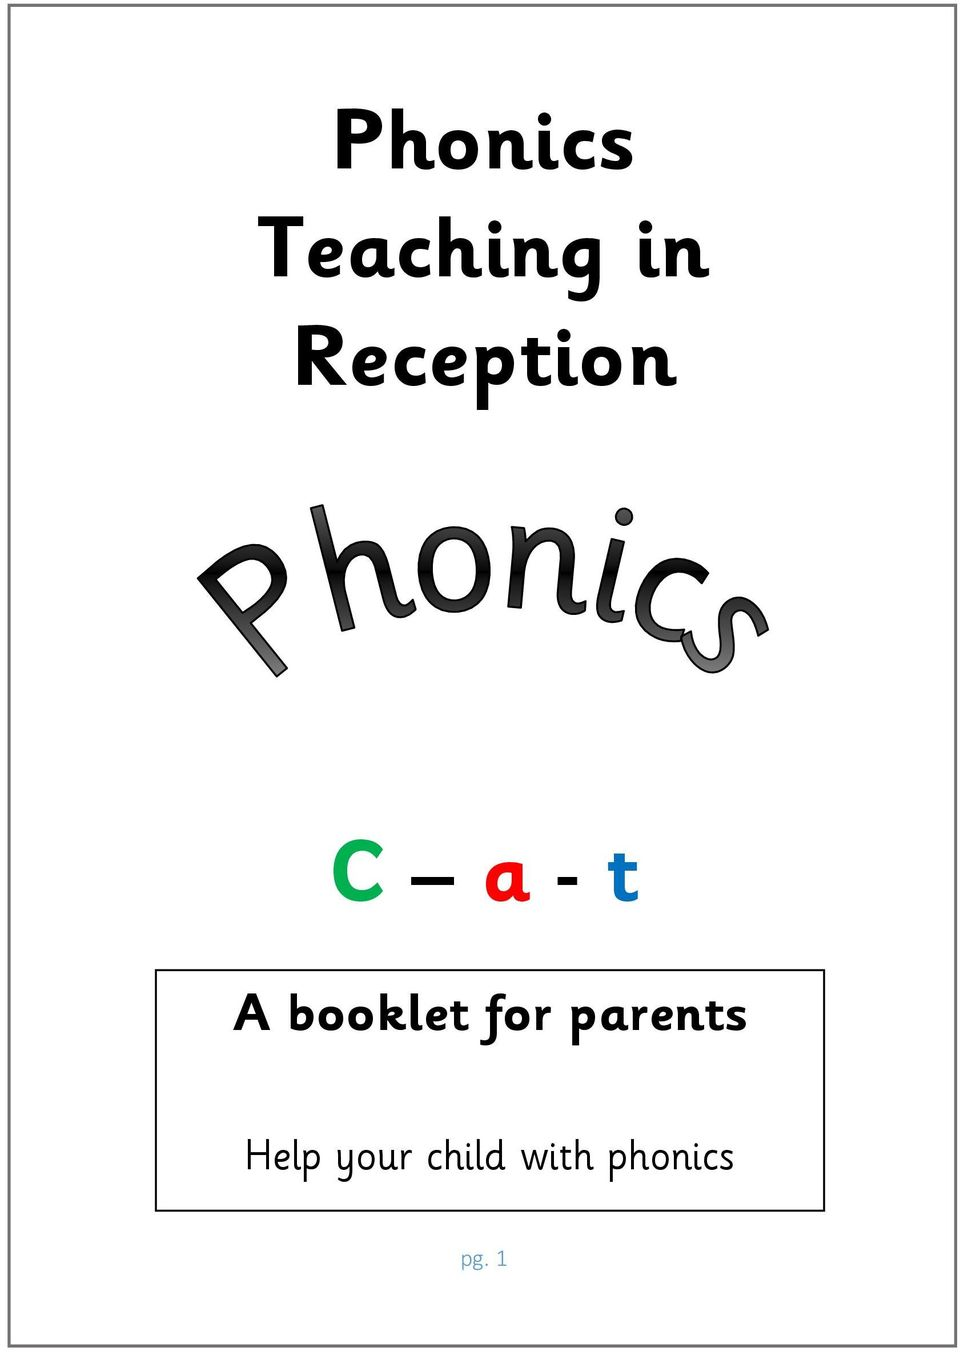 booklet for parents